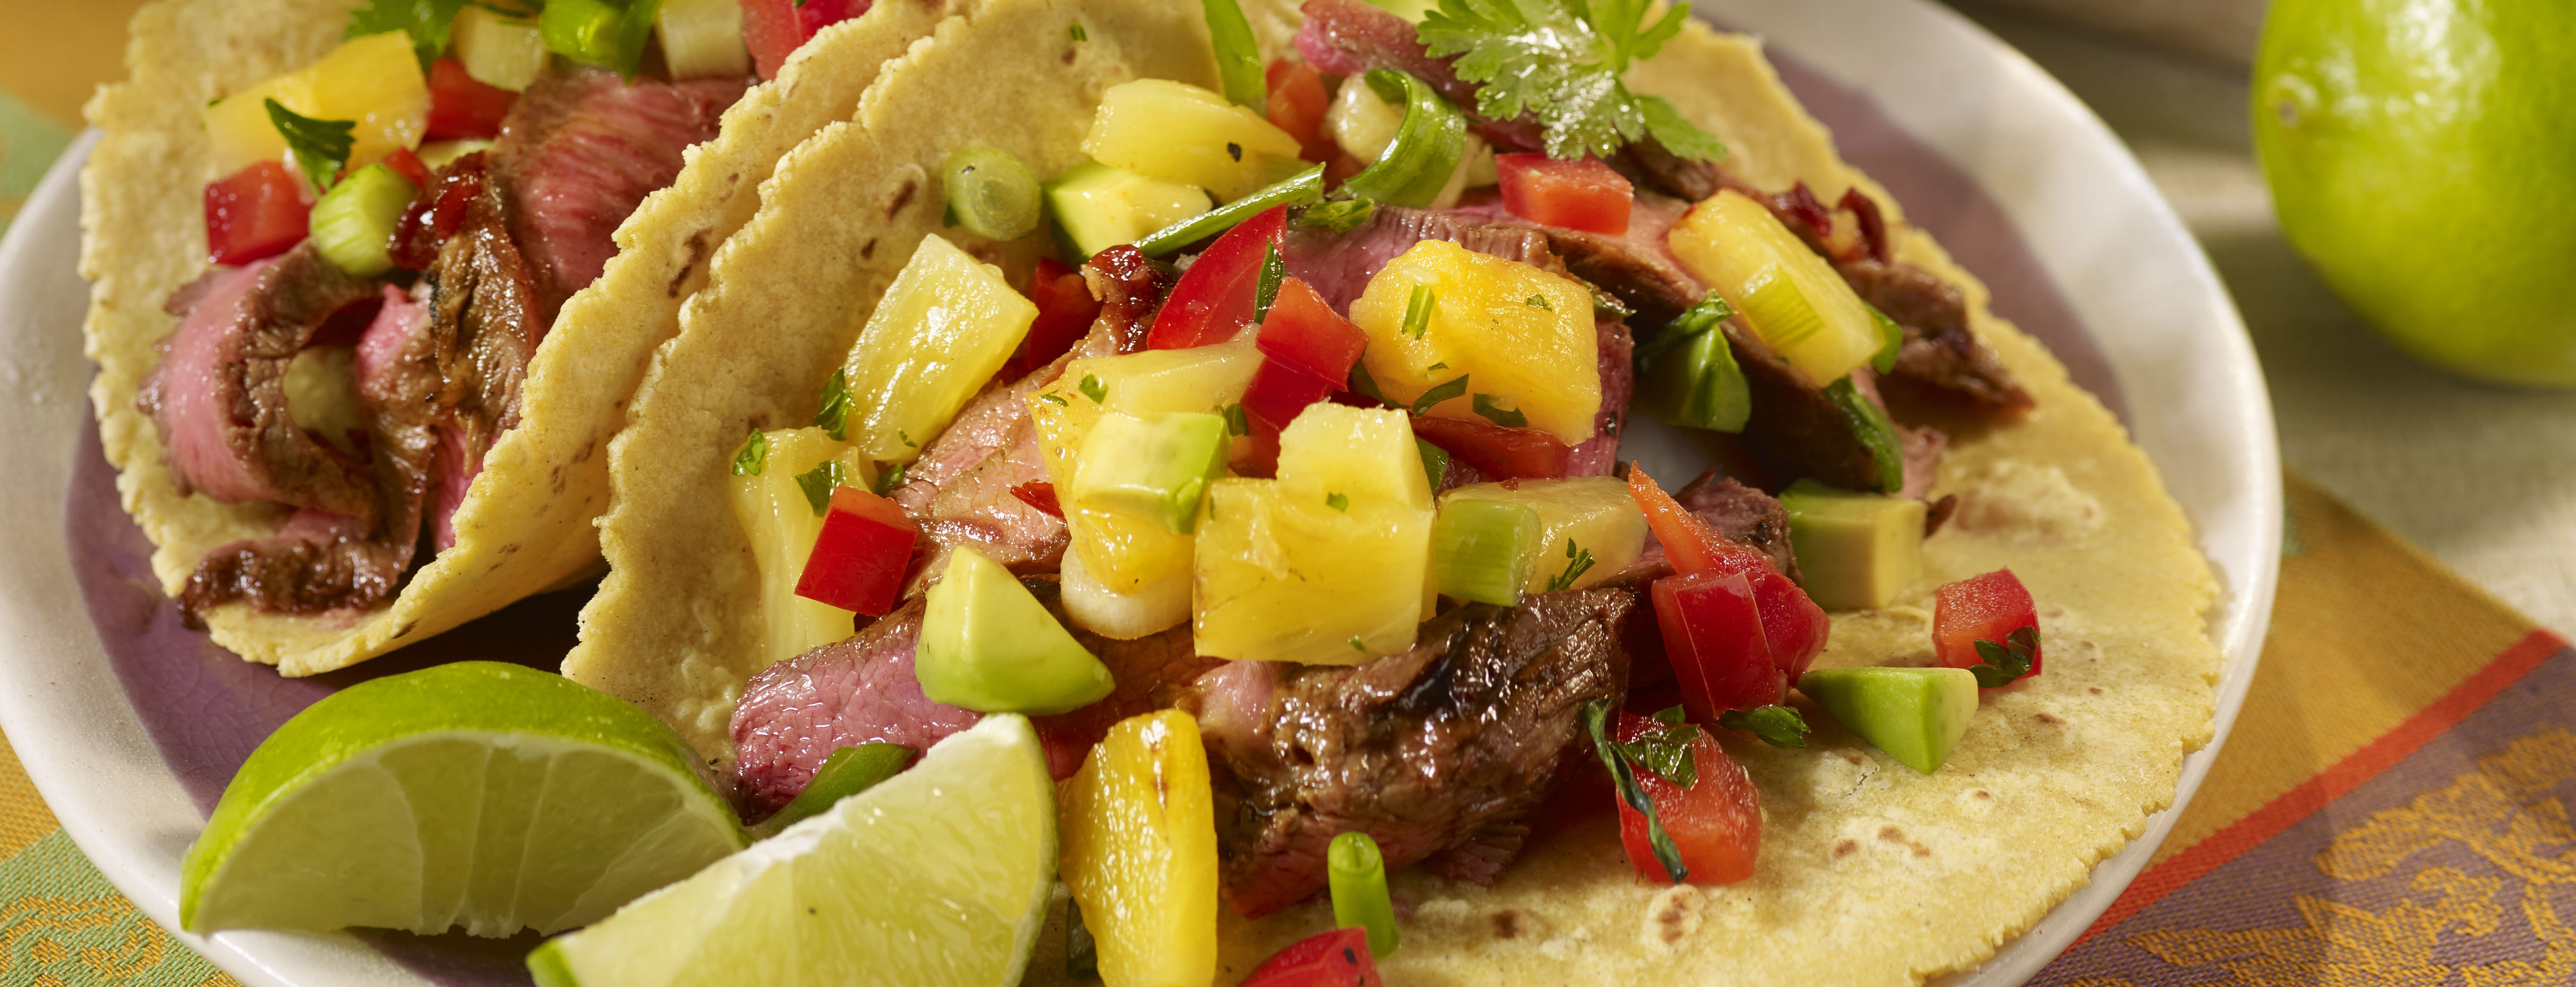 Photo of Chipotle Steak Tacos with Pineapple Avocado Salsa